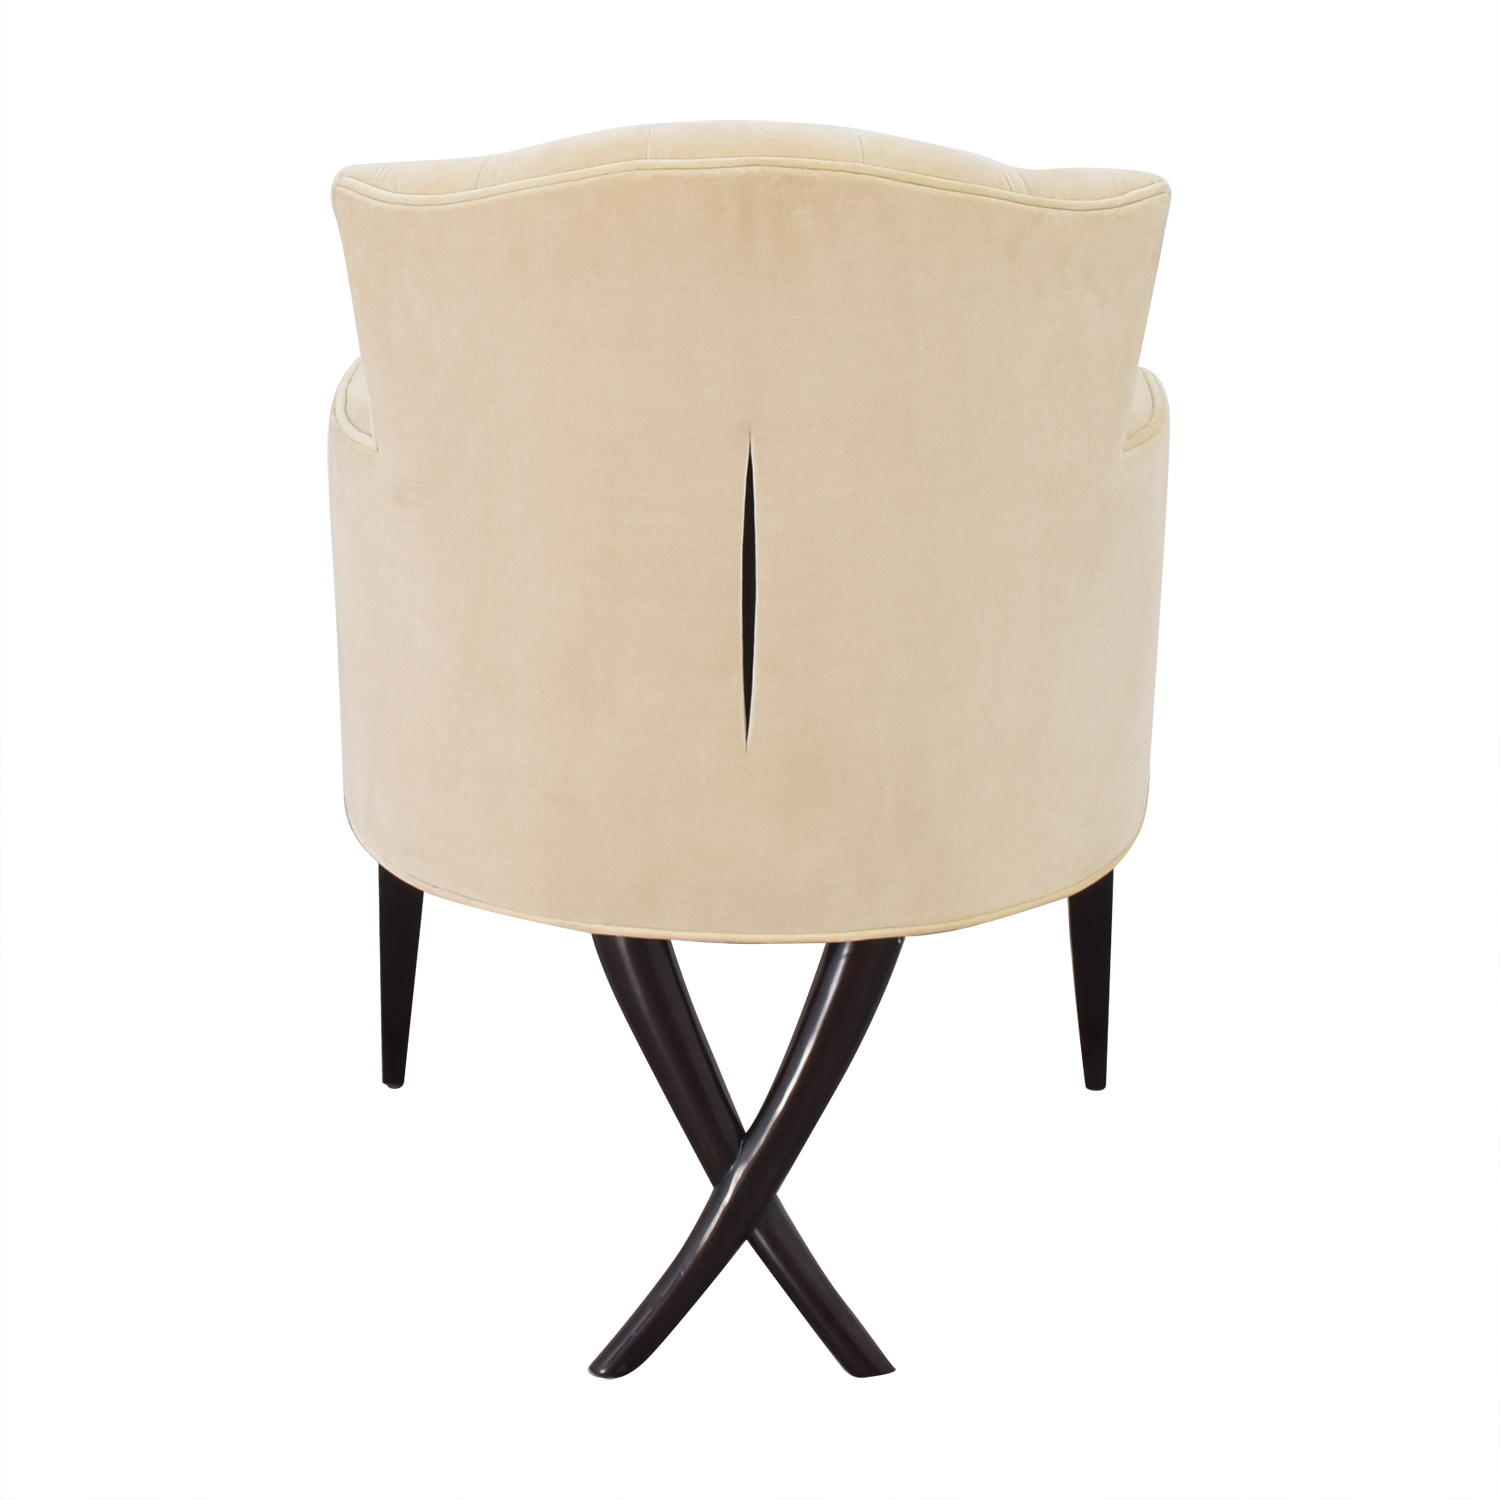 Christopher Guy Christopher Guy Monaco Chair dimensions